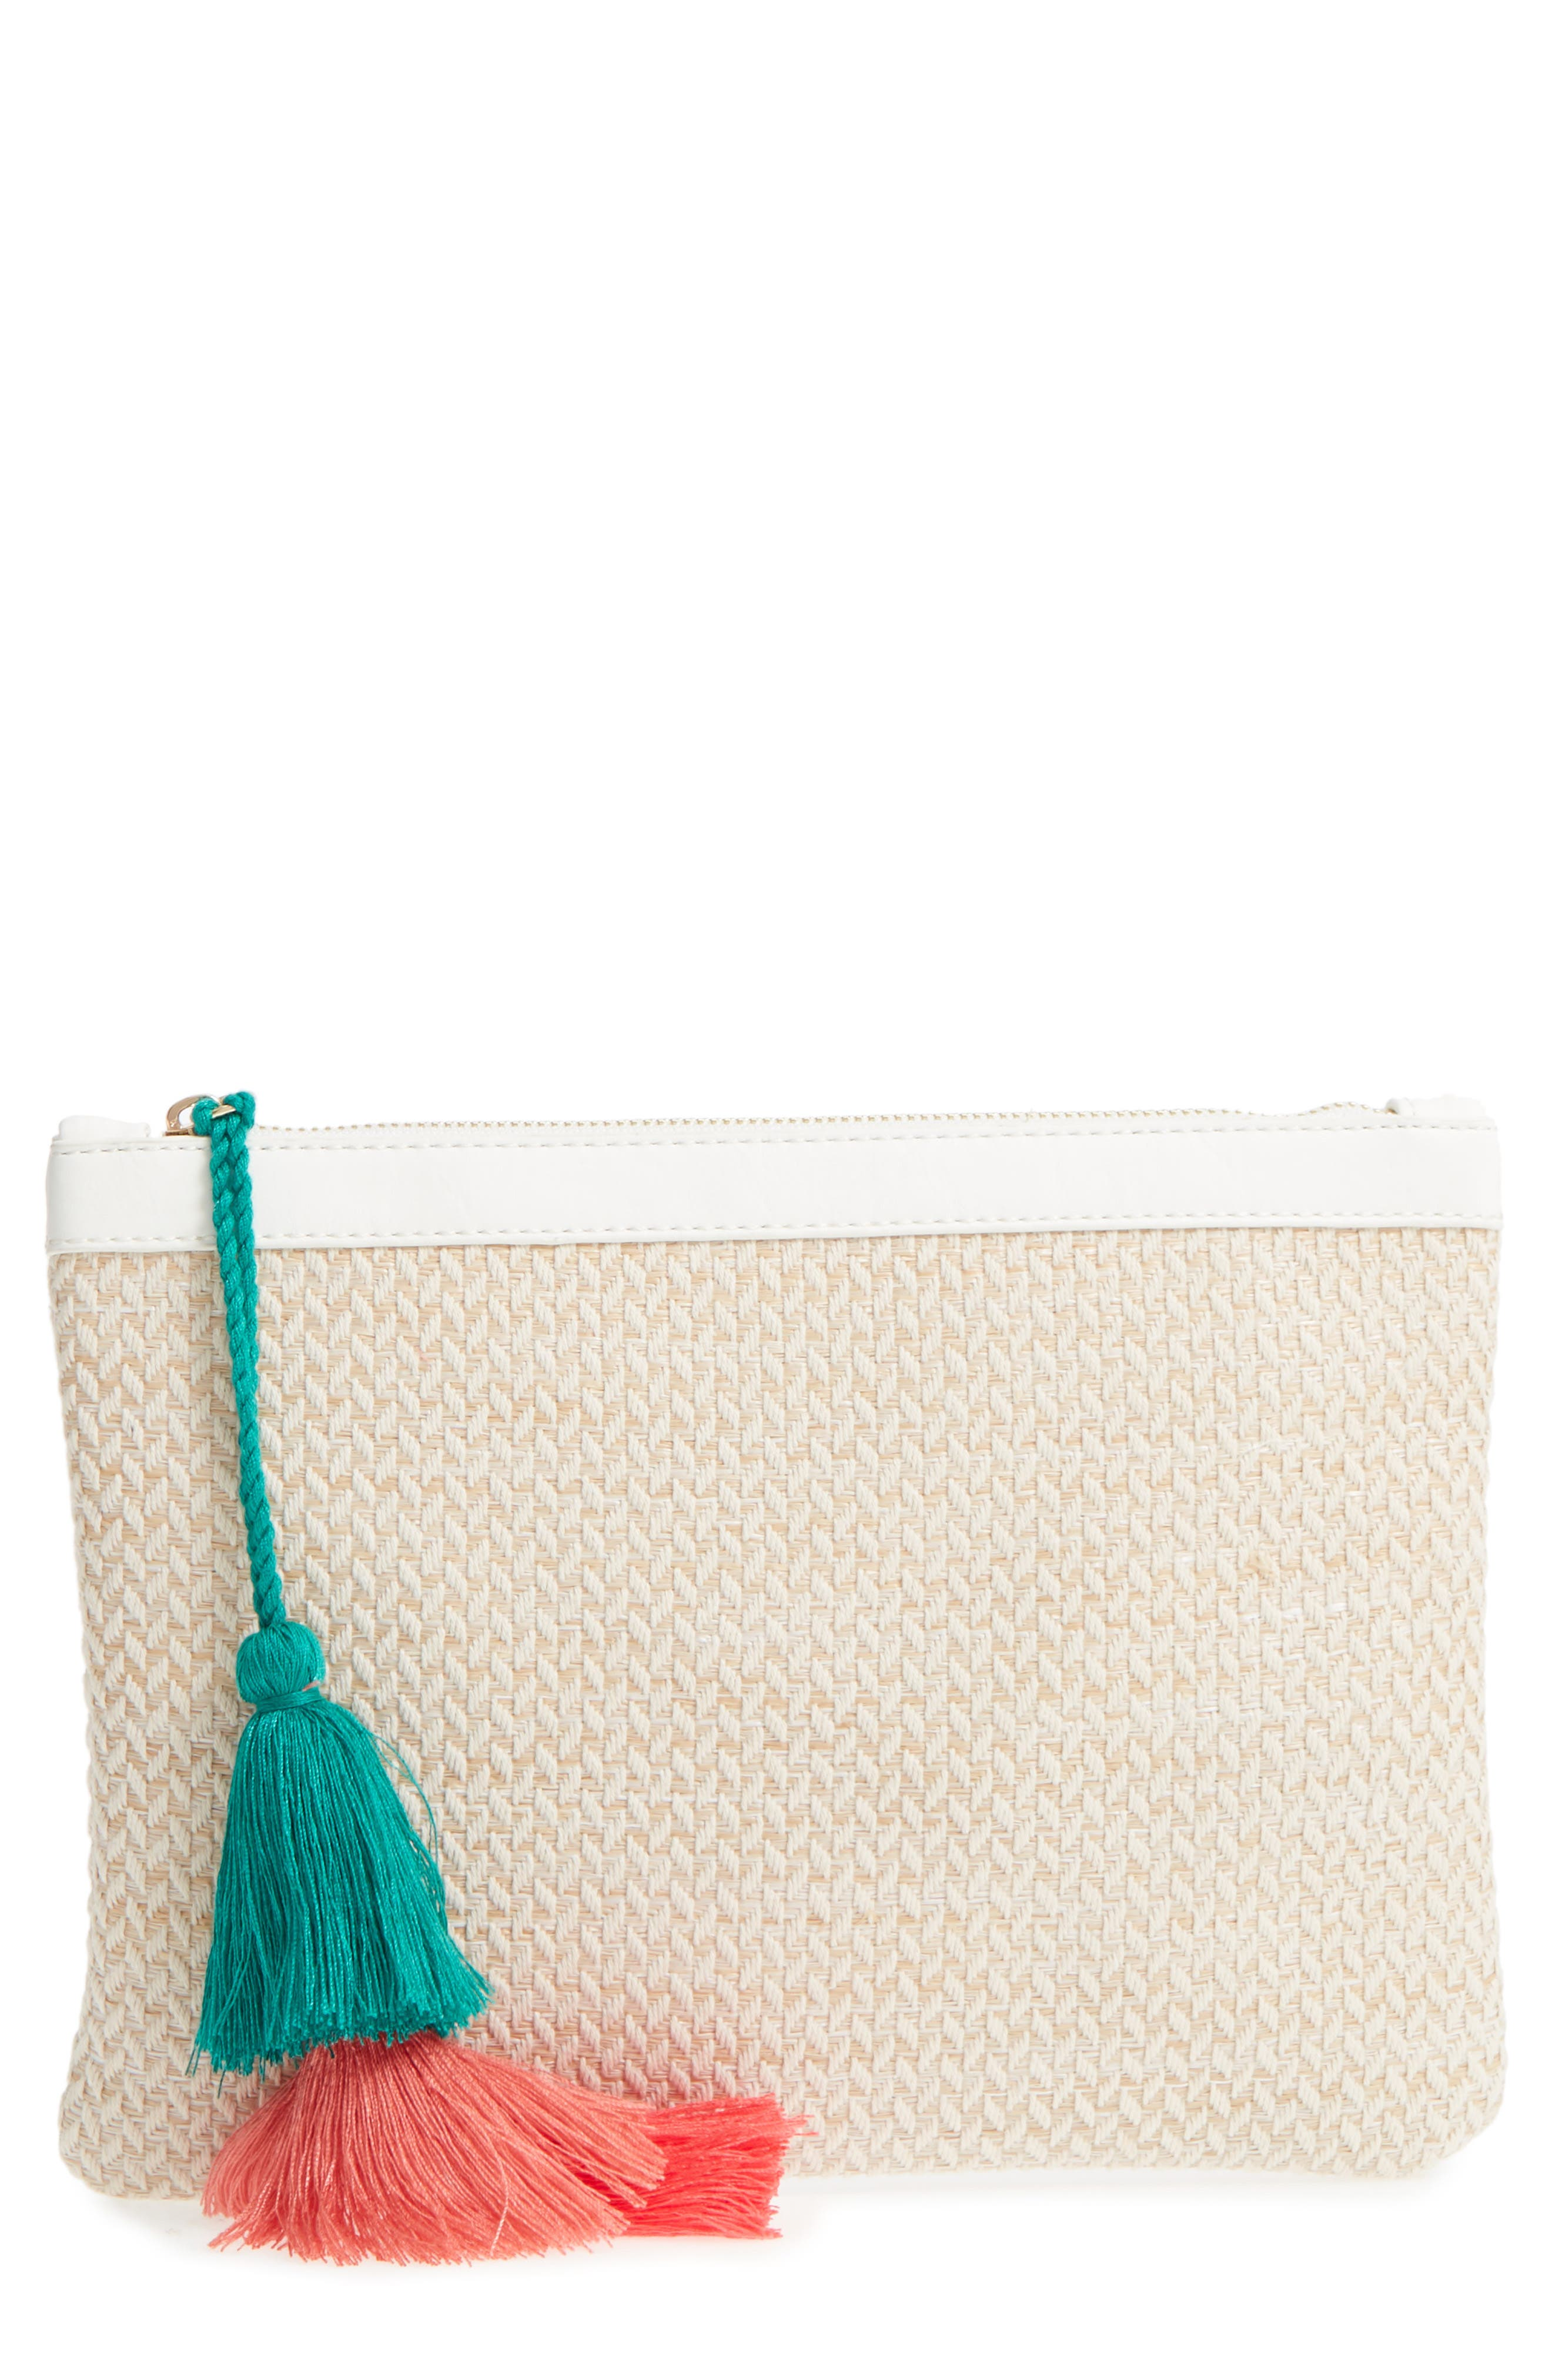 Tasseled Fabric Zip Pouch,                         Main,                         color, White/ Natural